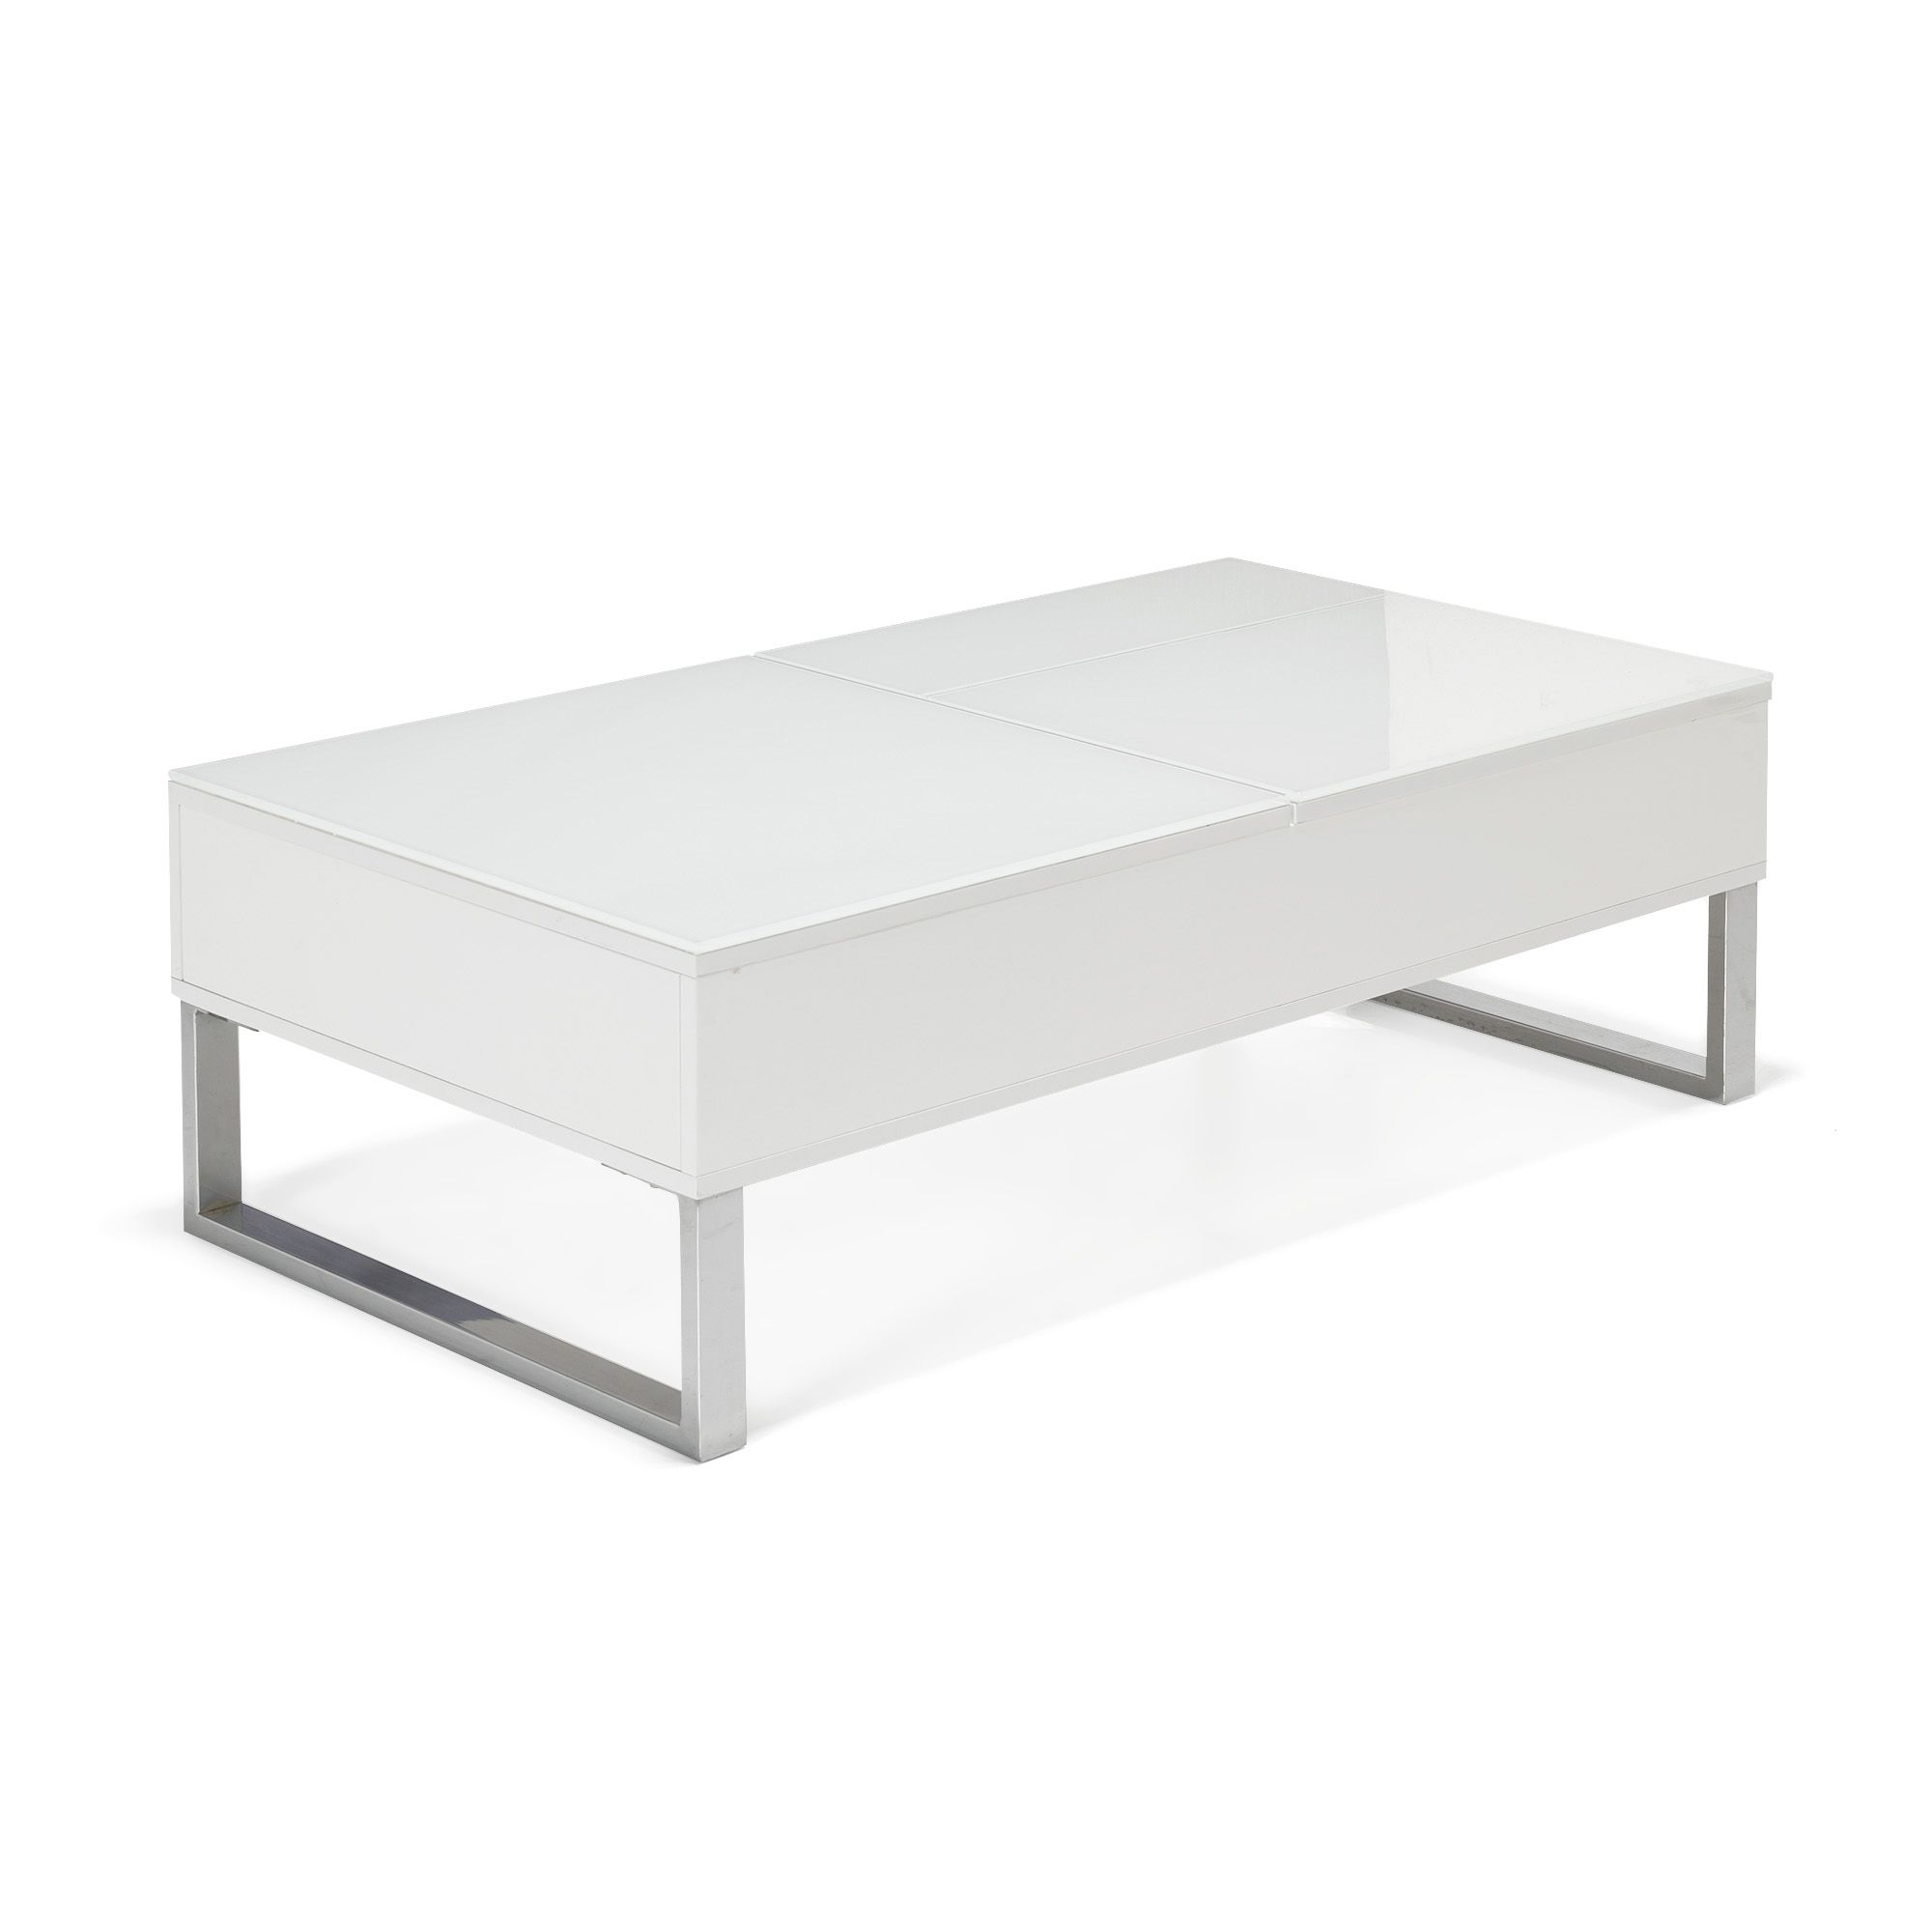 Alinea table basse de salon mobilier design d coration - Alinea salon ...